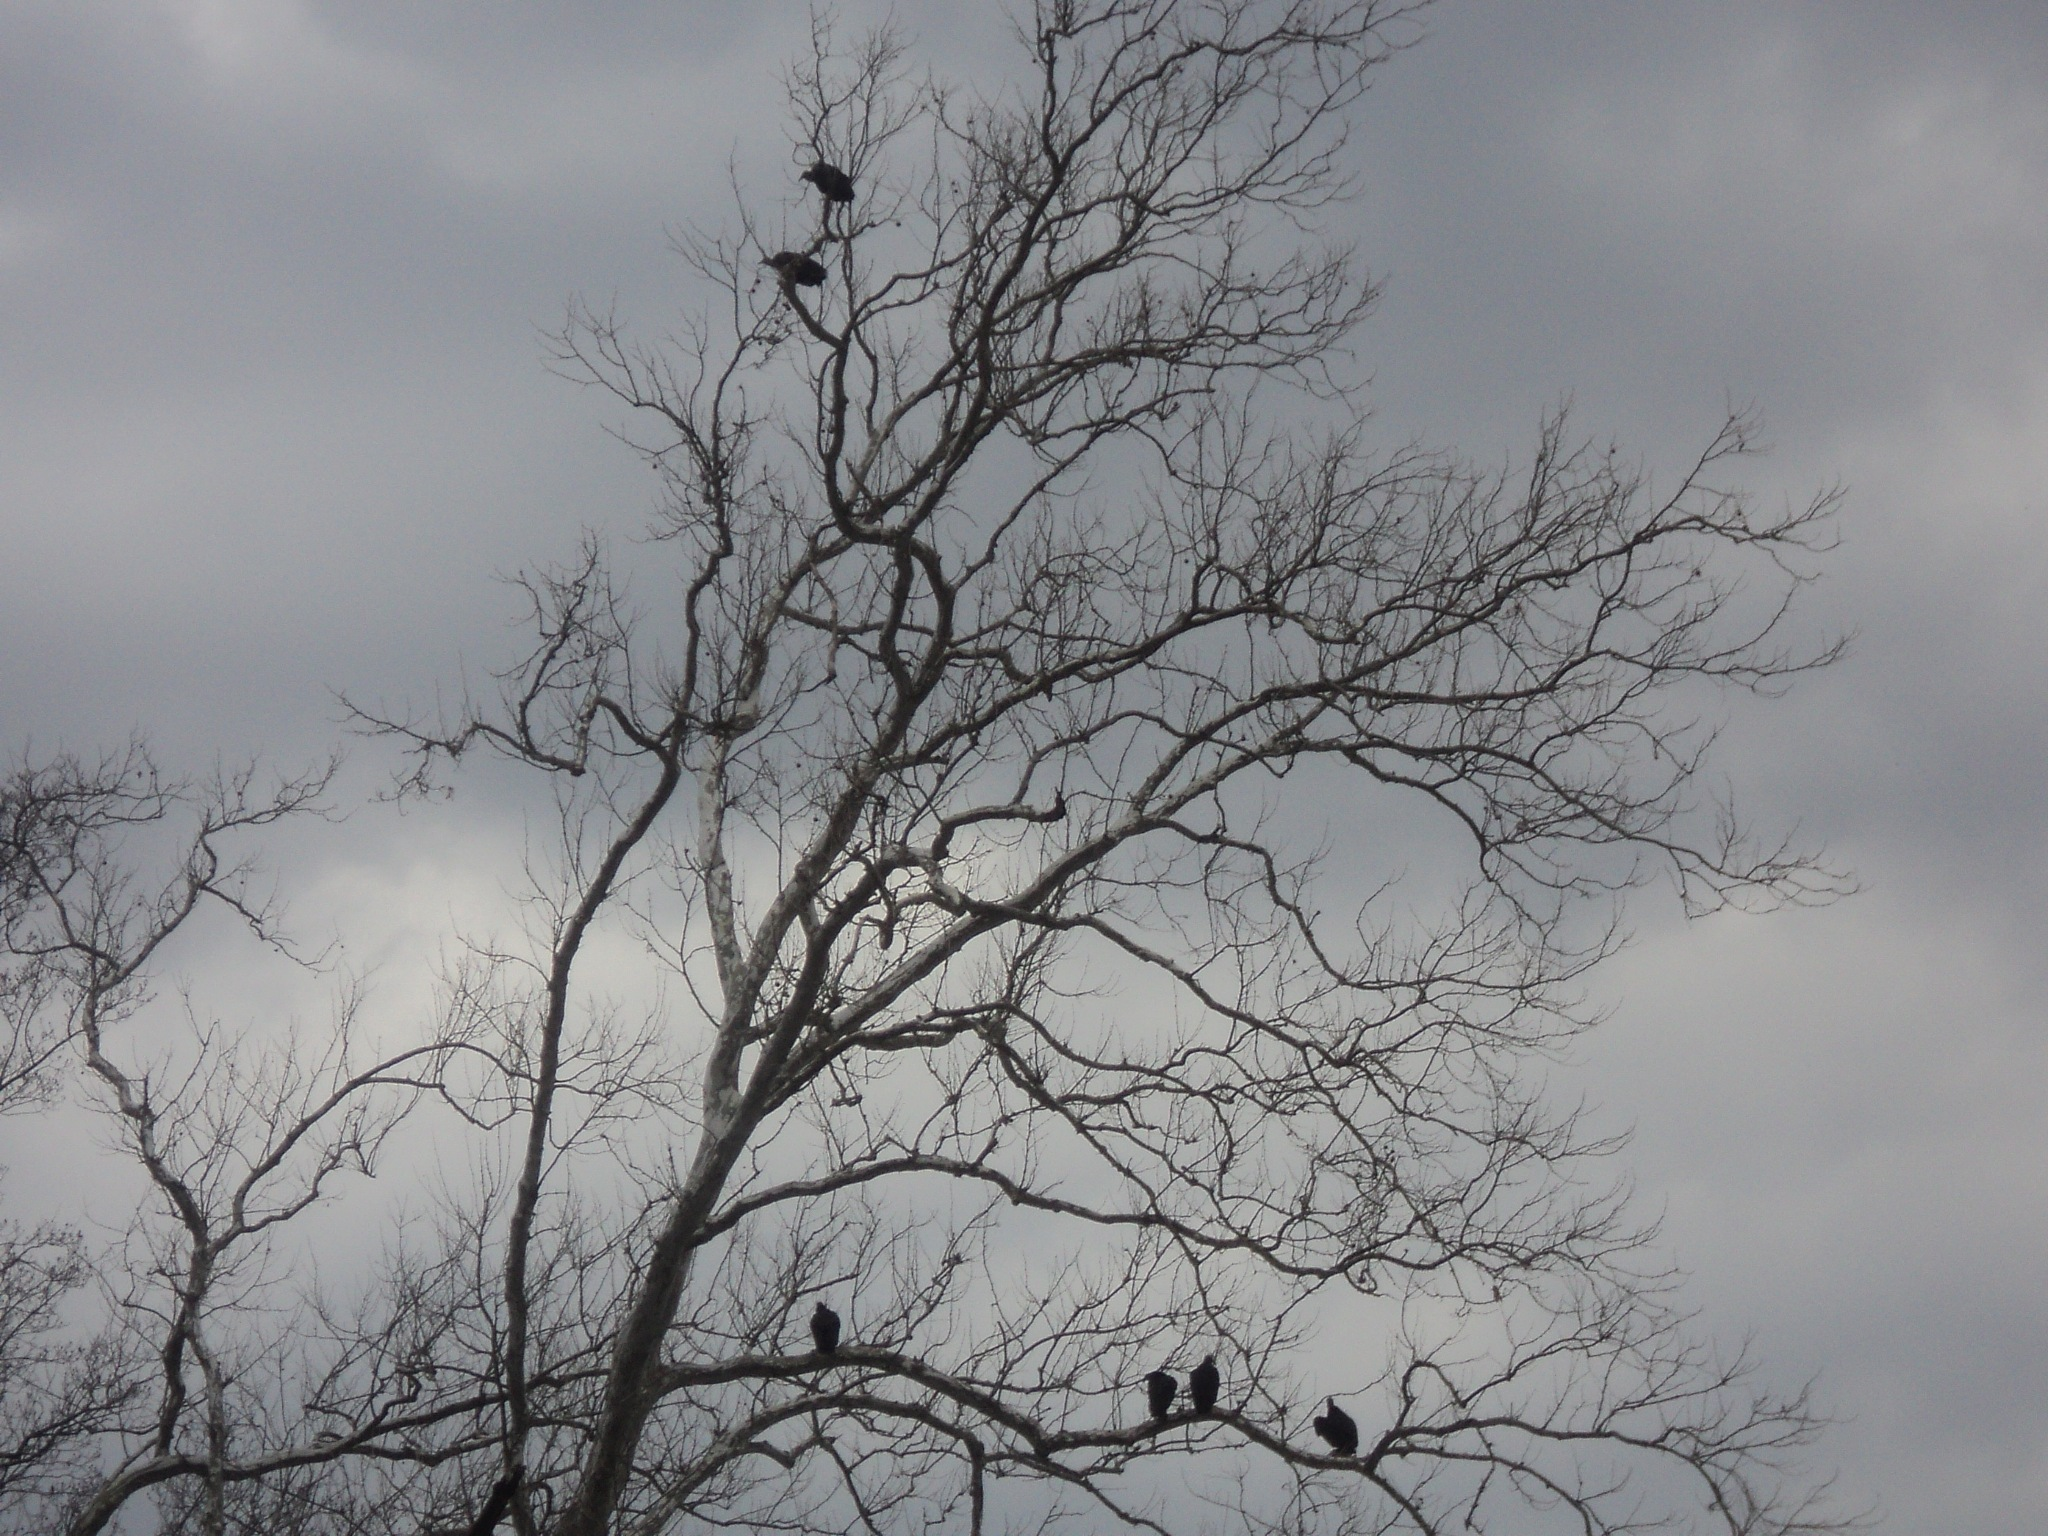 birds  in   the  tree by Michelle